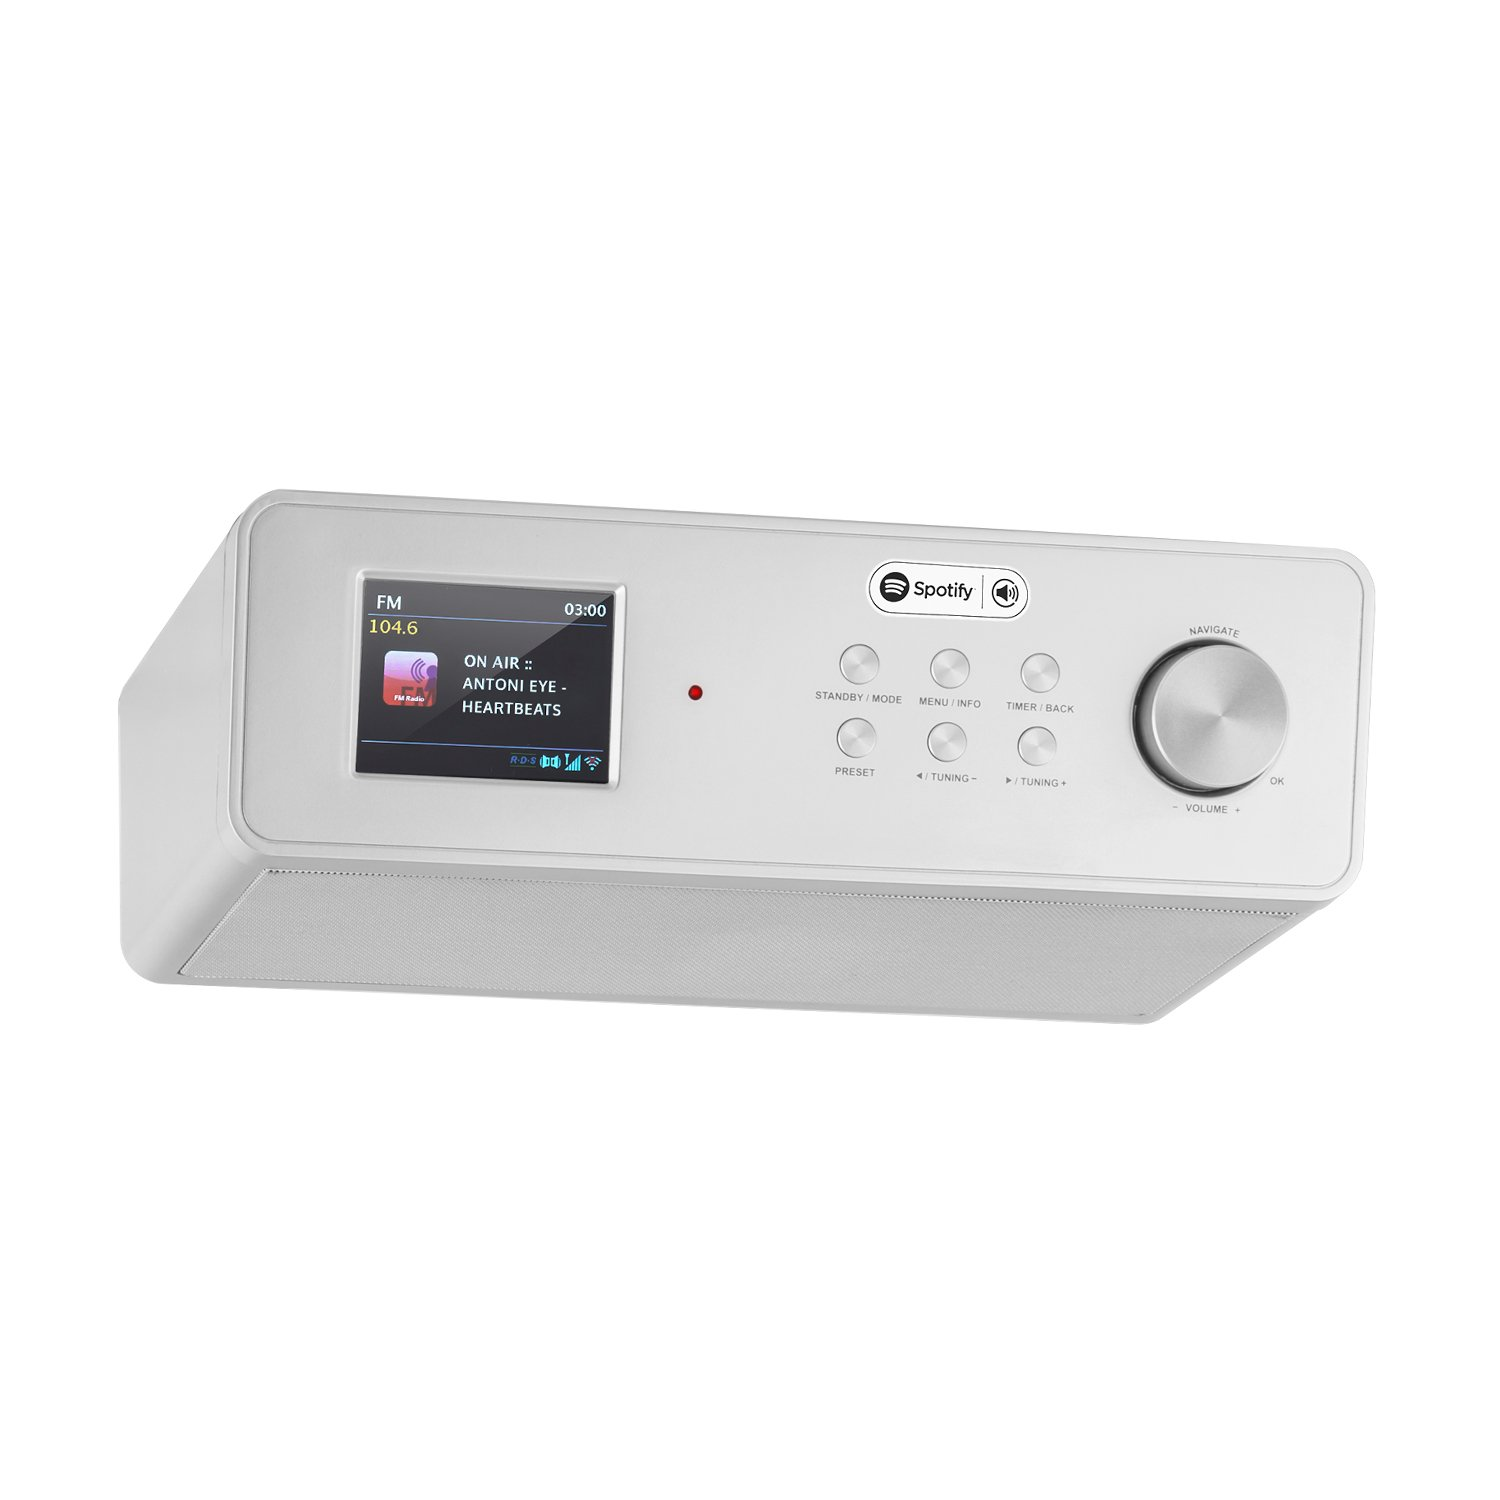 auna KR-200 SI Under Cabinet Radio • Kitchen Radio • Spotify Support • Broadband Speaker • TFT Color Display • Remote Control • FM Tuner • RDS Support • WiFi • AUX • 10 Station Presets • Silver